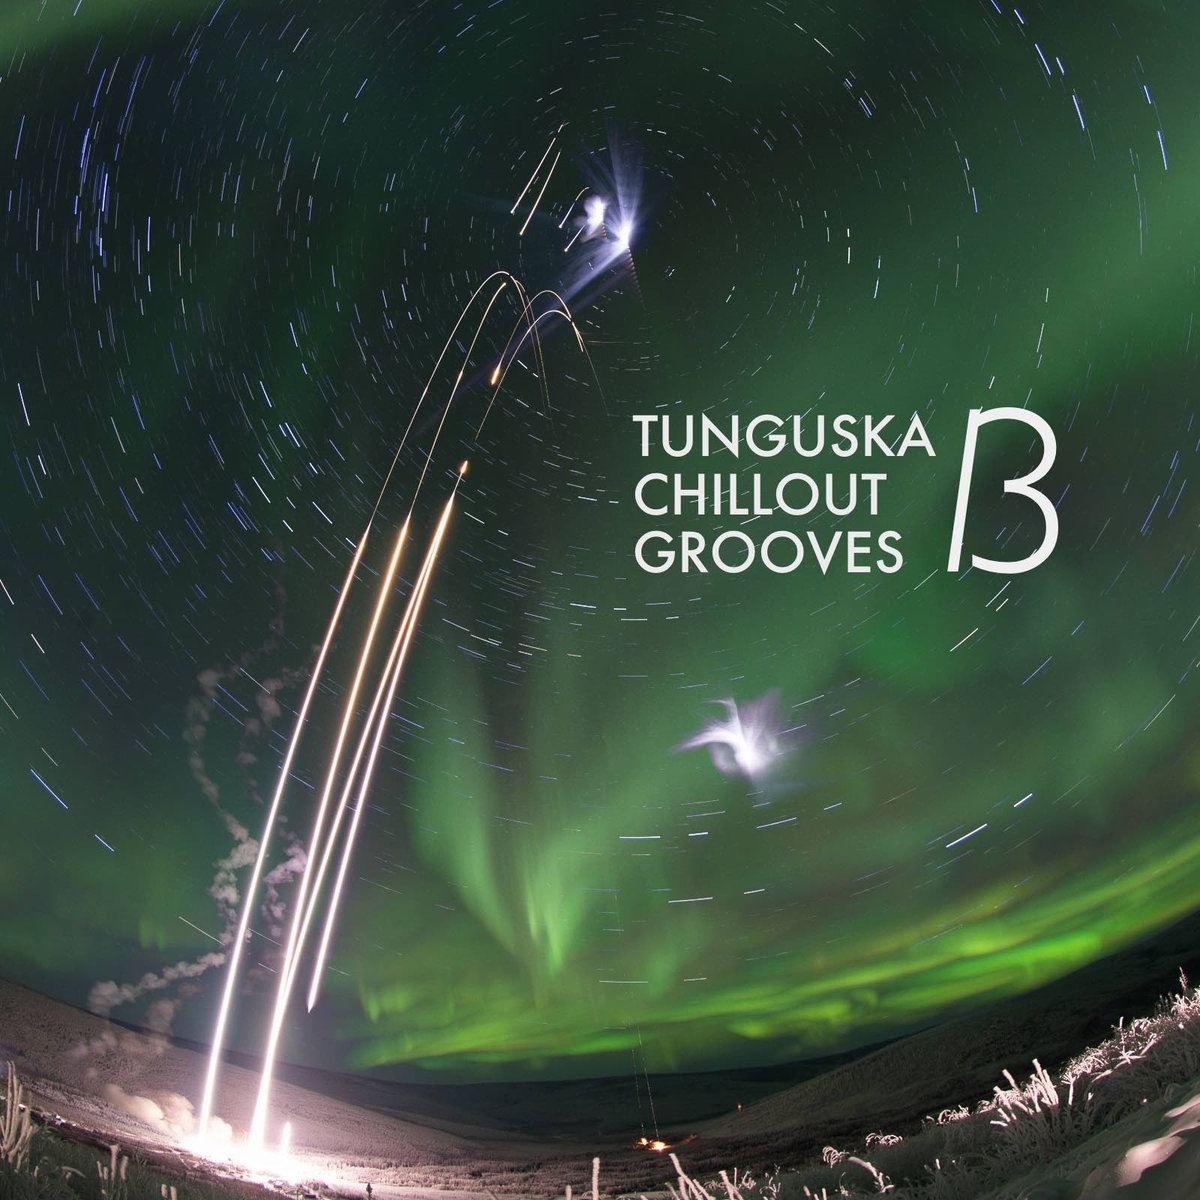 Nephed - Contact @ 'Tunguska Chillout Grooves vol.13' album (electronic, ambient)